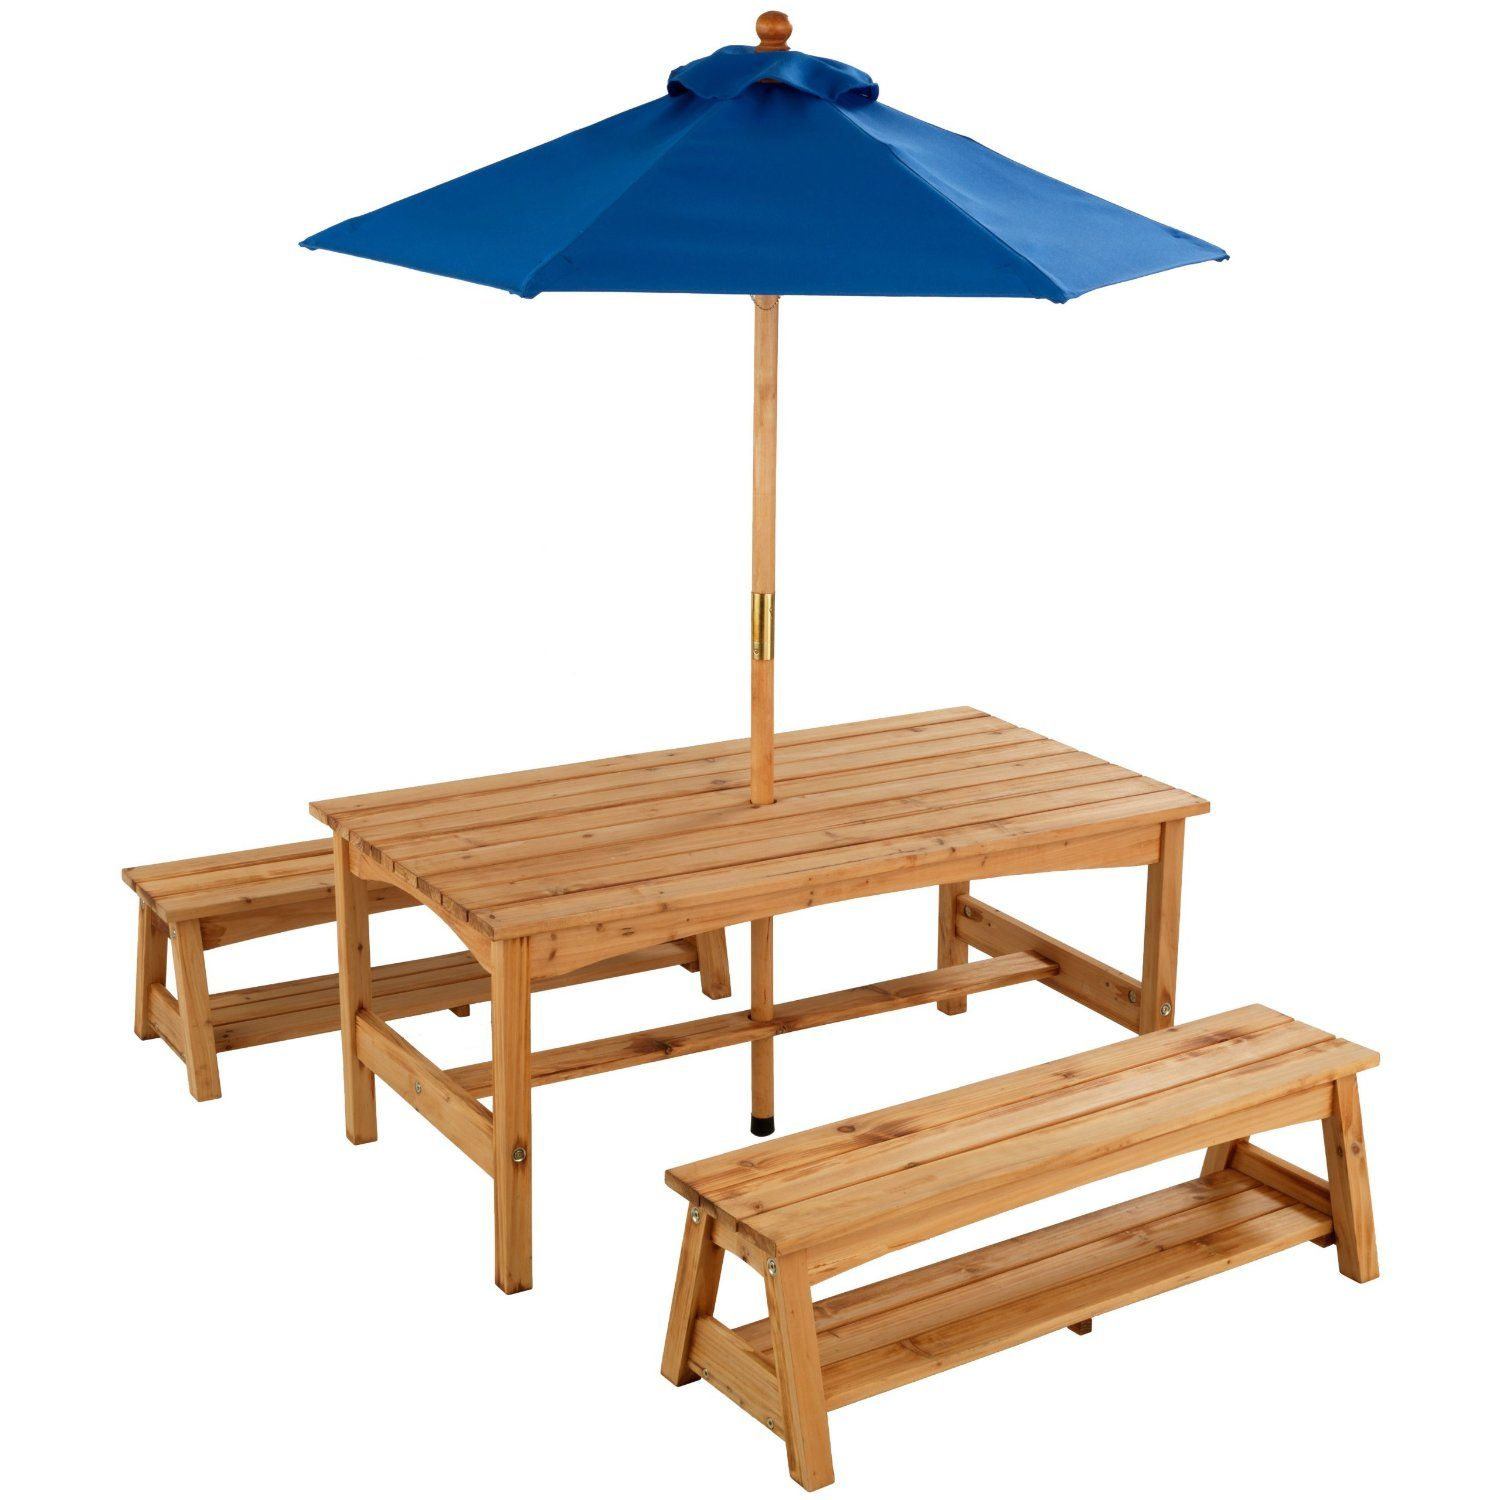 Use Farm Table Like This With Umbrella Through It Drill Hole In